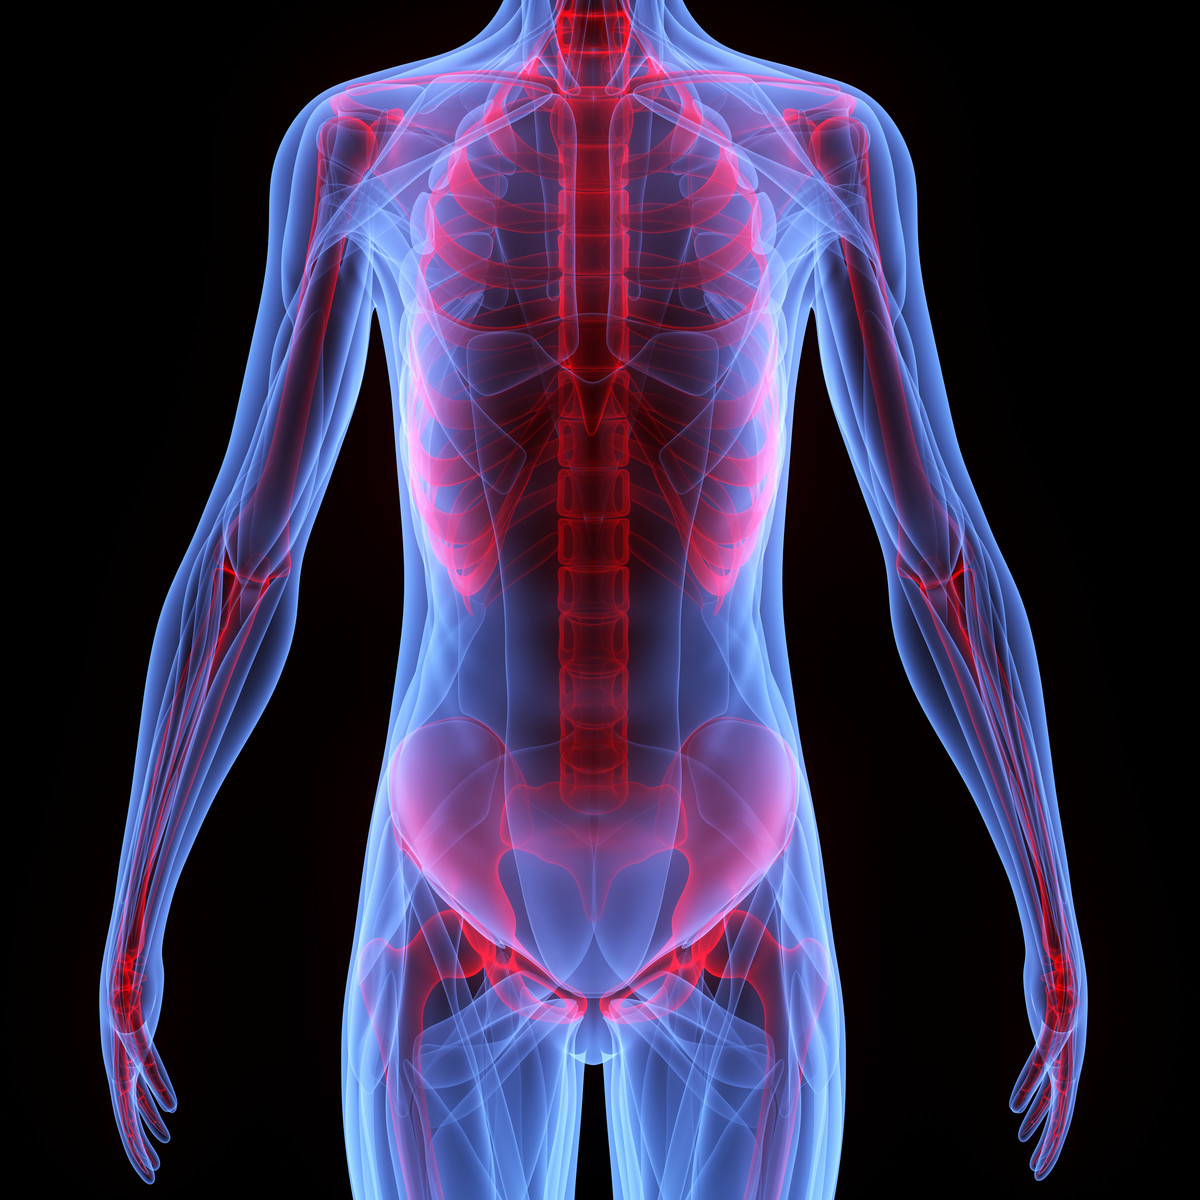 Nerve-pain-body